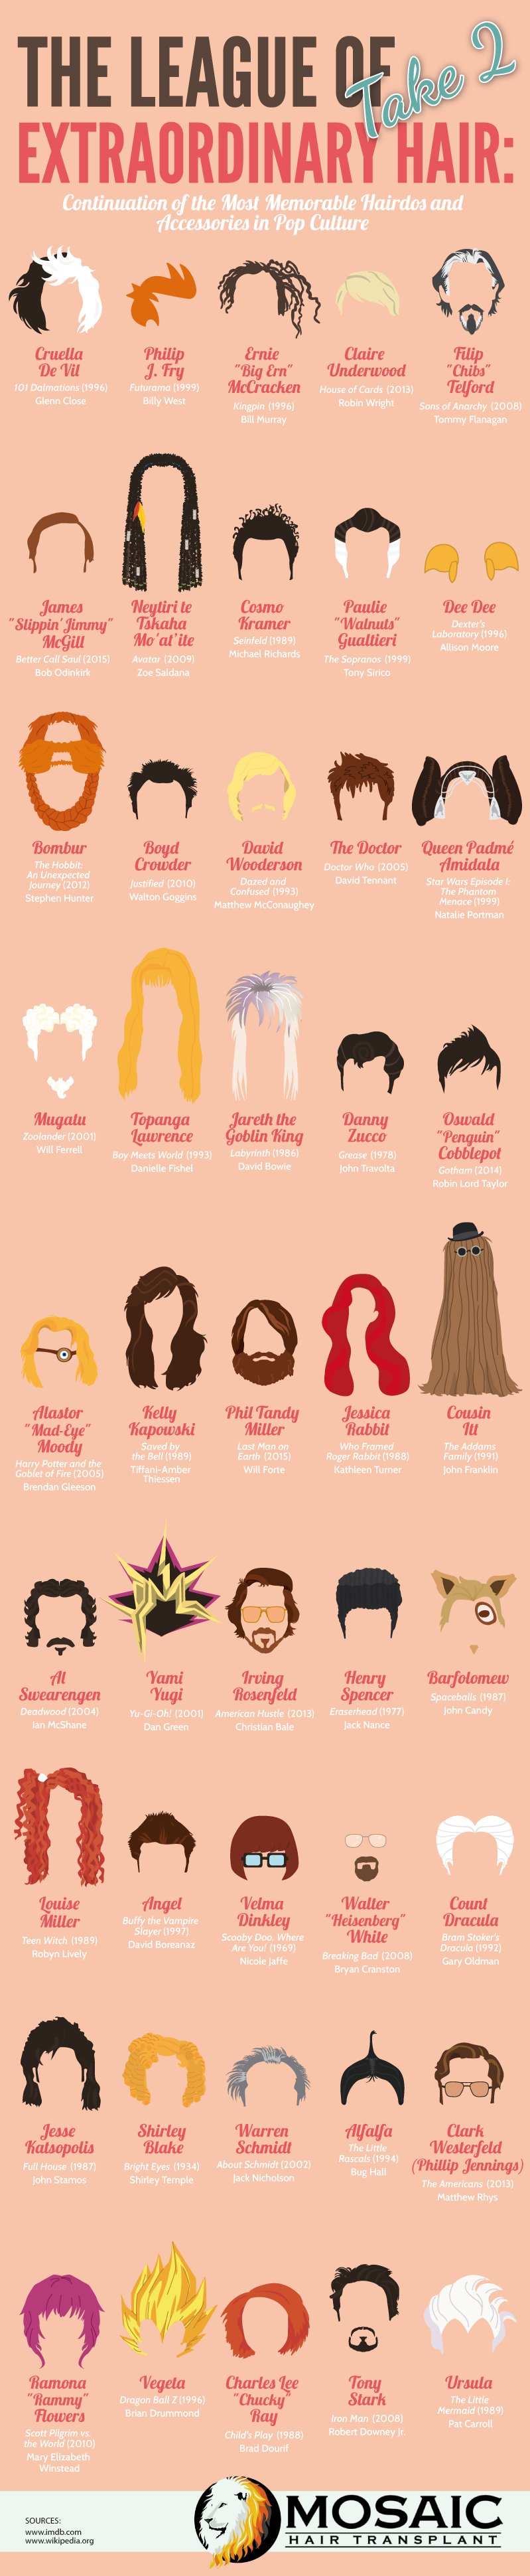 The League of Extraordinary Hair: Take 2